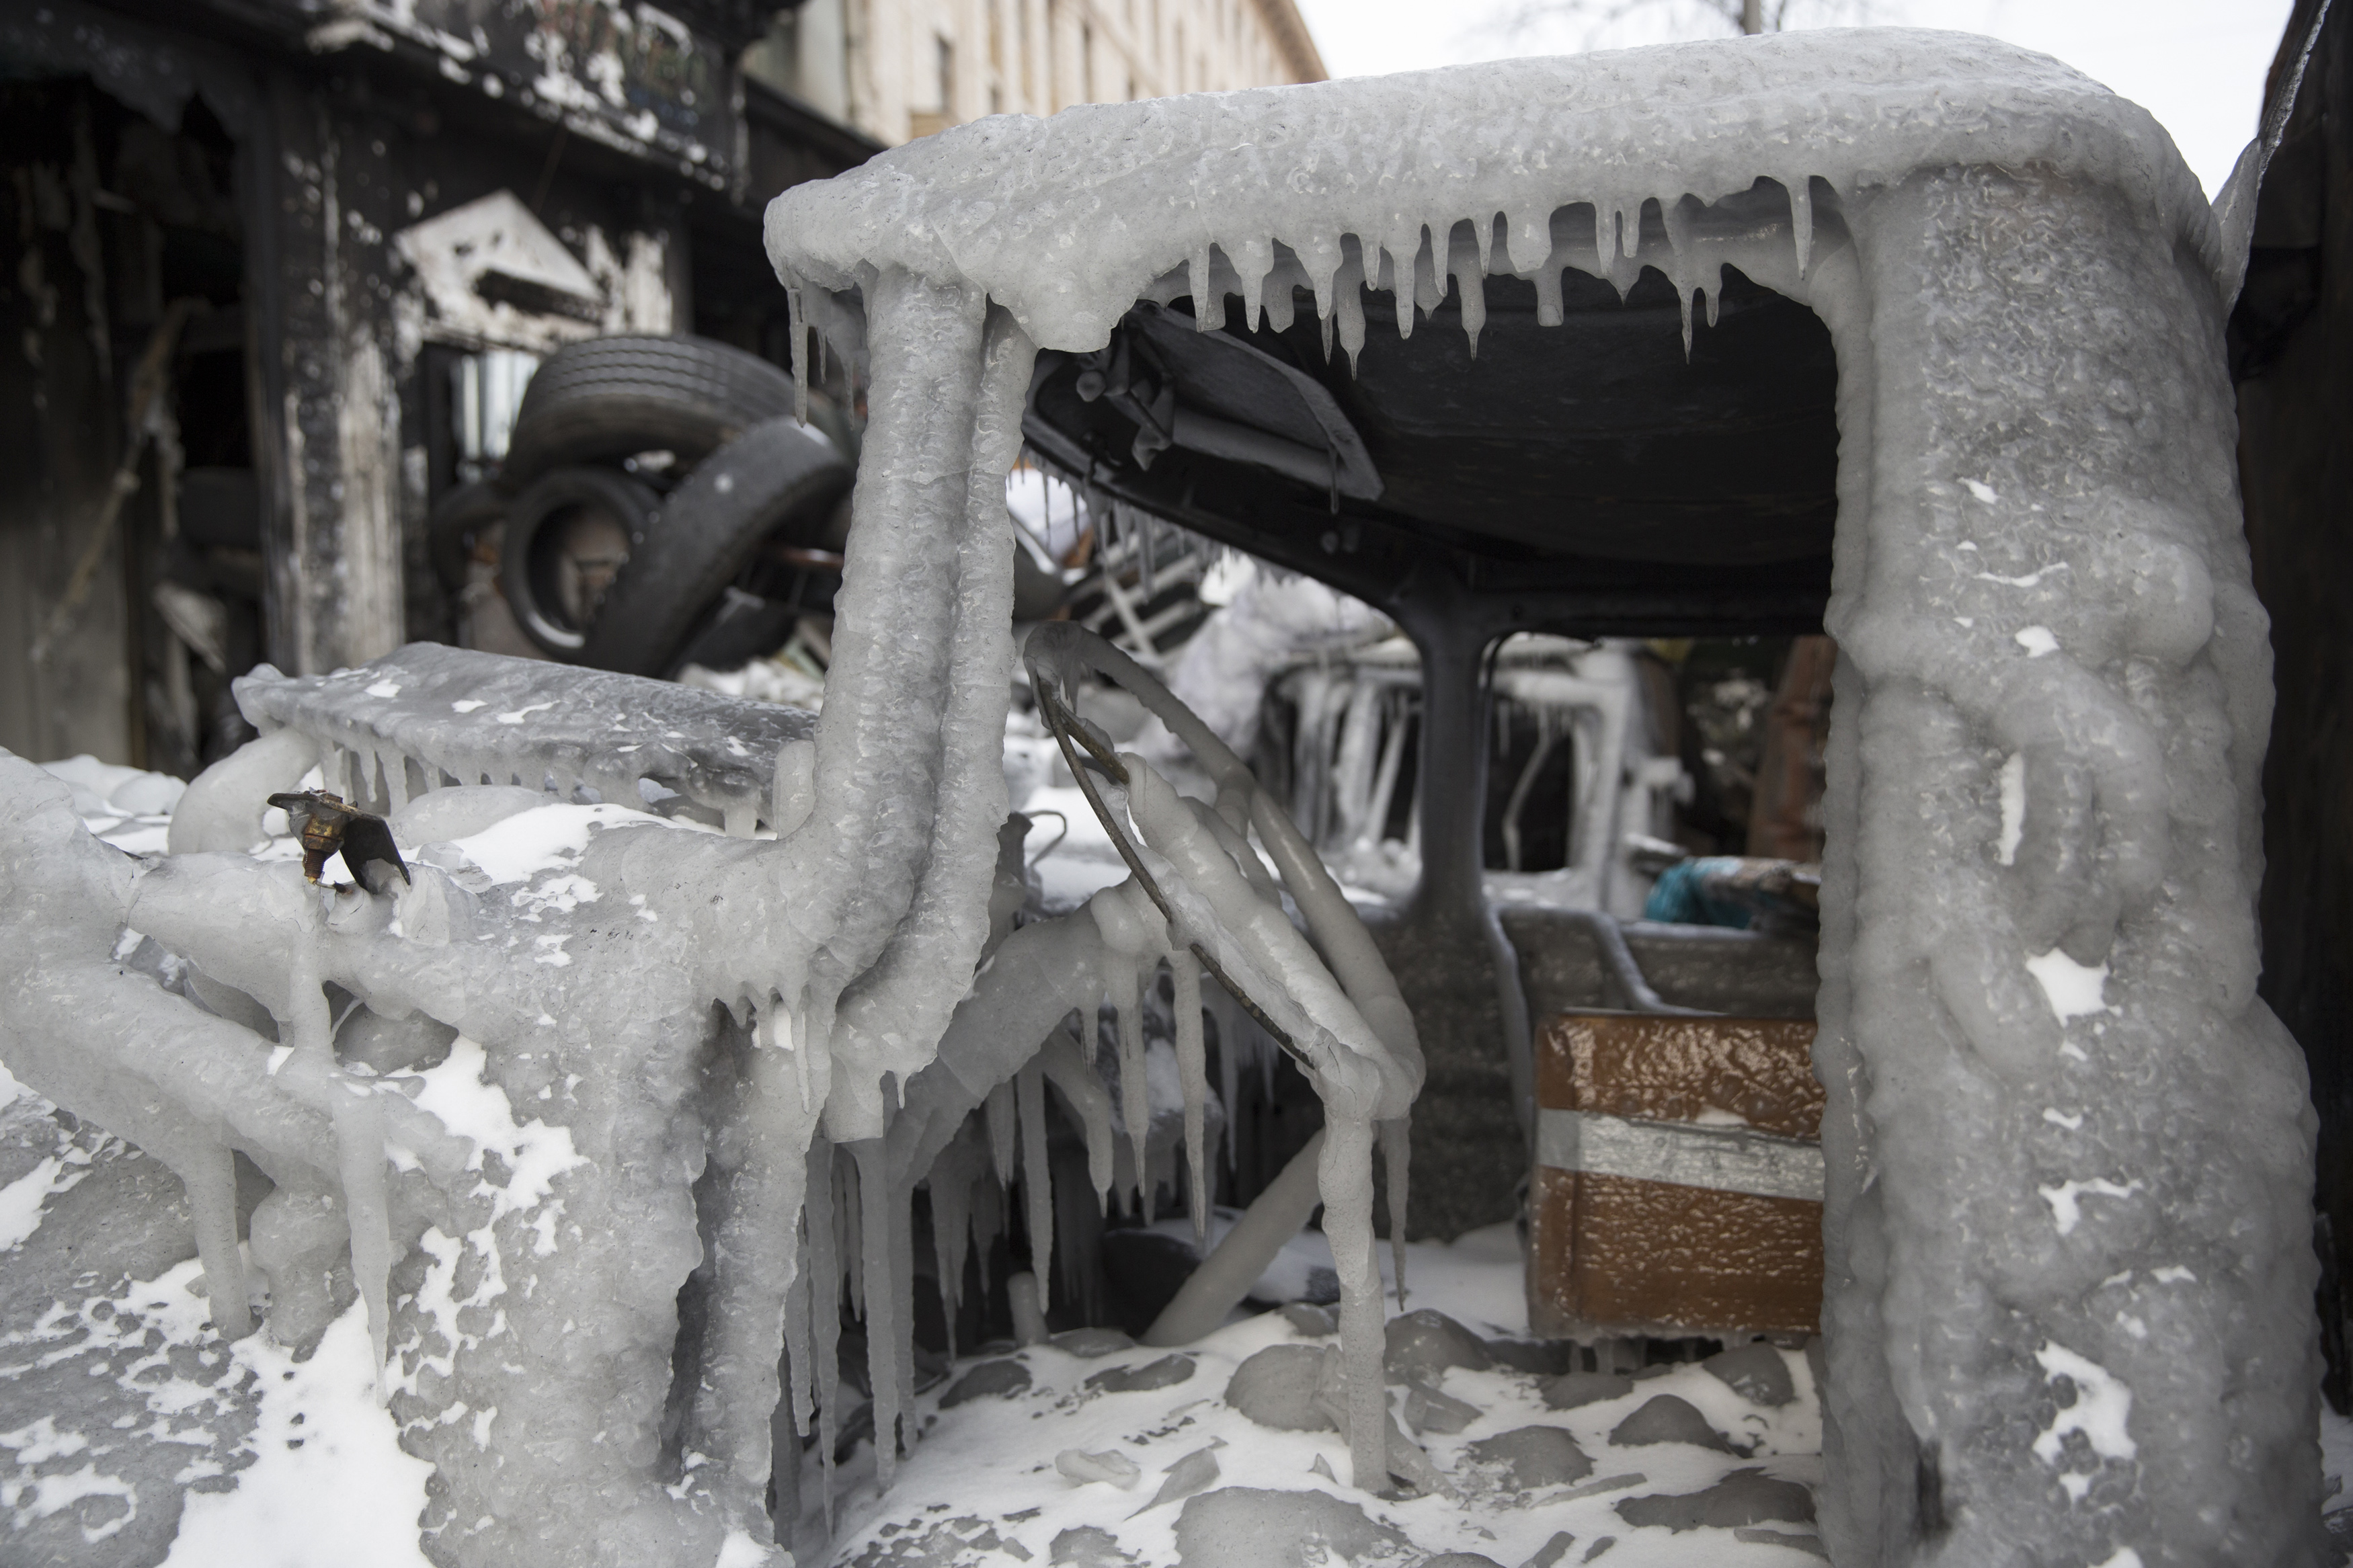 The cabin of a gutted truck is seen covered with ice at fortifications erected by anti-government protesters in Kiev, January 29, 2014. Ukrainian Prime Minister Mykola Azarov resigned on Tuesday while deputies loyal to President Viktor Yanukovich, ac